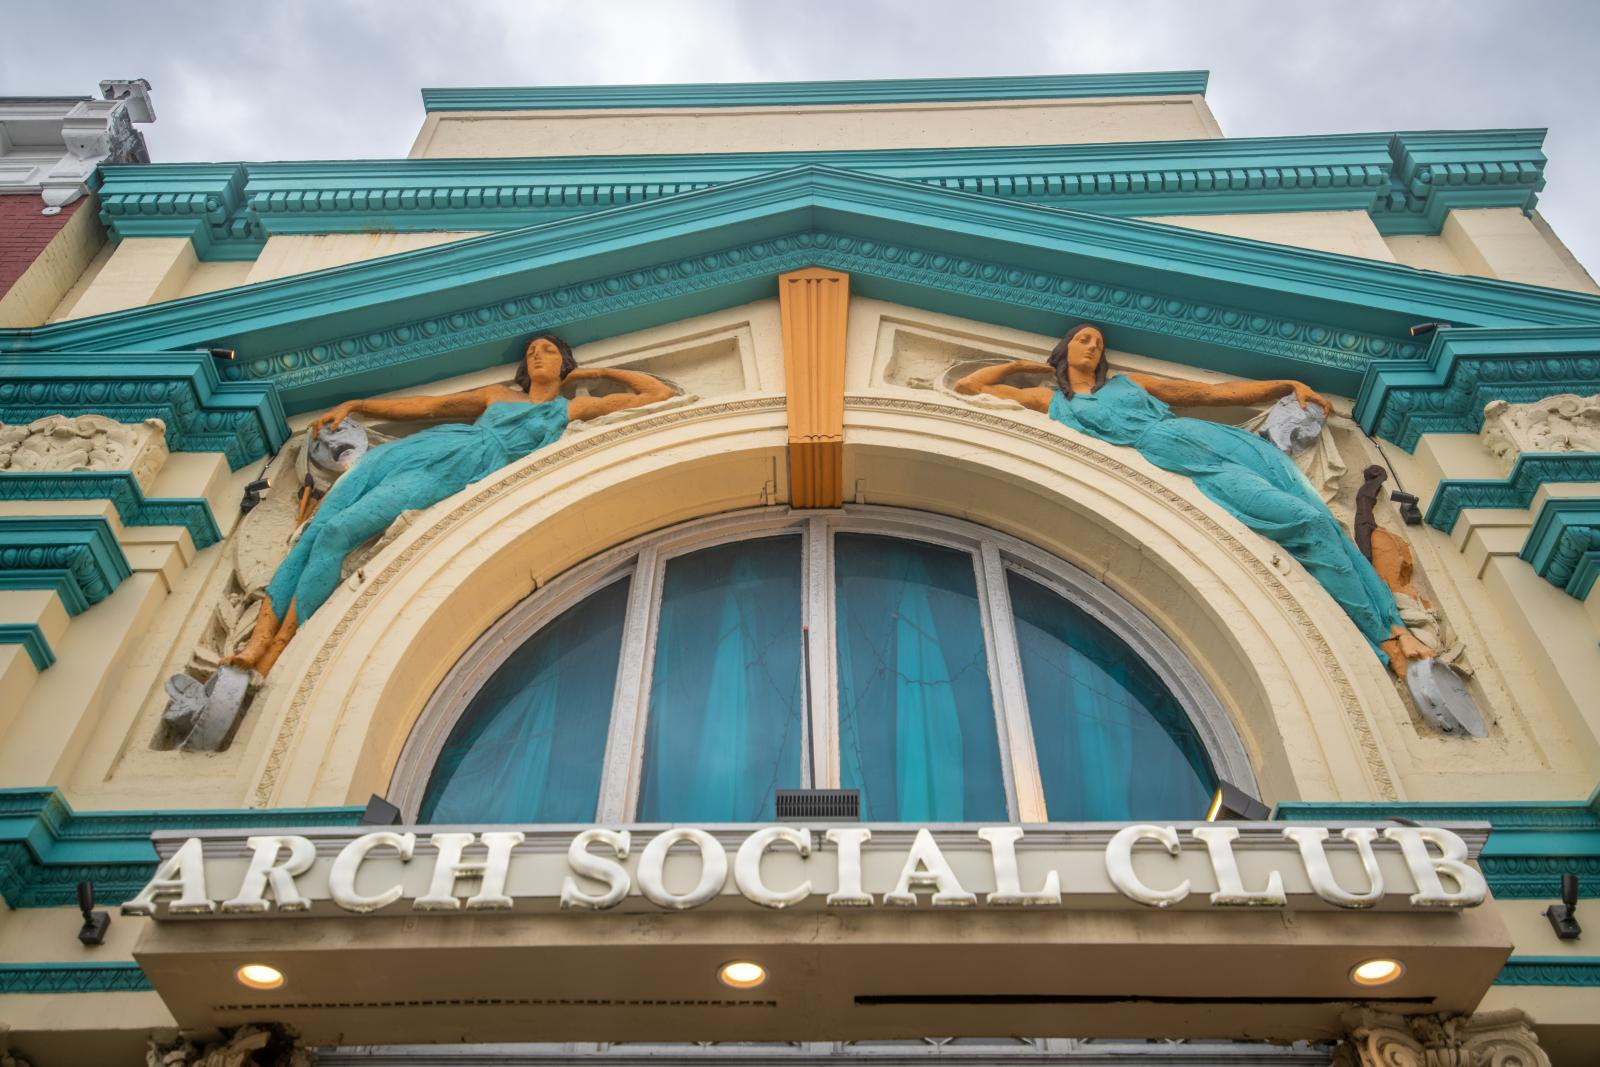 The Arch Social Club is an anchor organization of the Black Arts & Entertainment District running along Pennsylvania Avenue in Baltimore City. Photo by Edwin Remsberg Photographs.